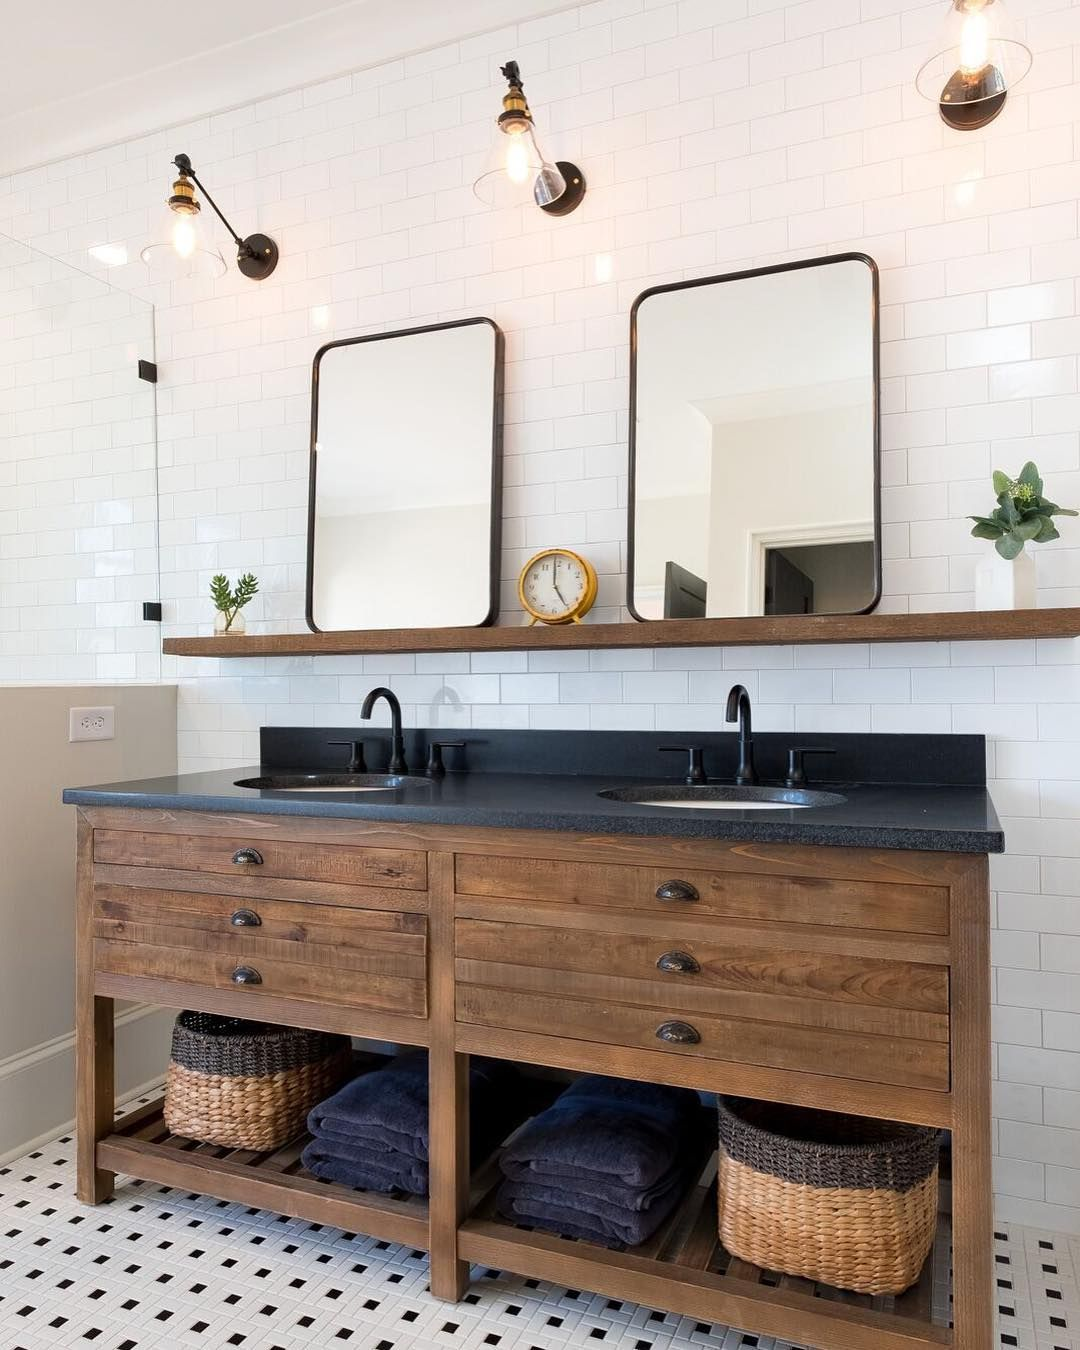 9 Bathroom Backsplash Ideas That Prove The Bathroom Can Be The Prettiest Room In The Hous Bathroom Backsplash Modern Farmhouse Bathroom Simple Bathroom Designs